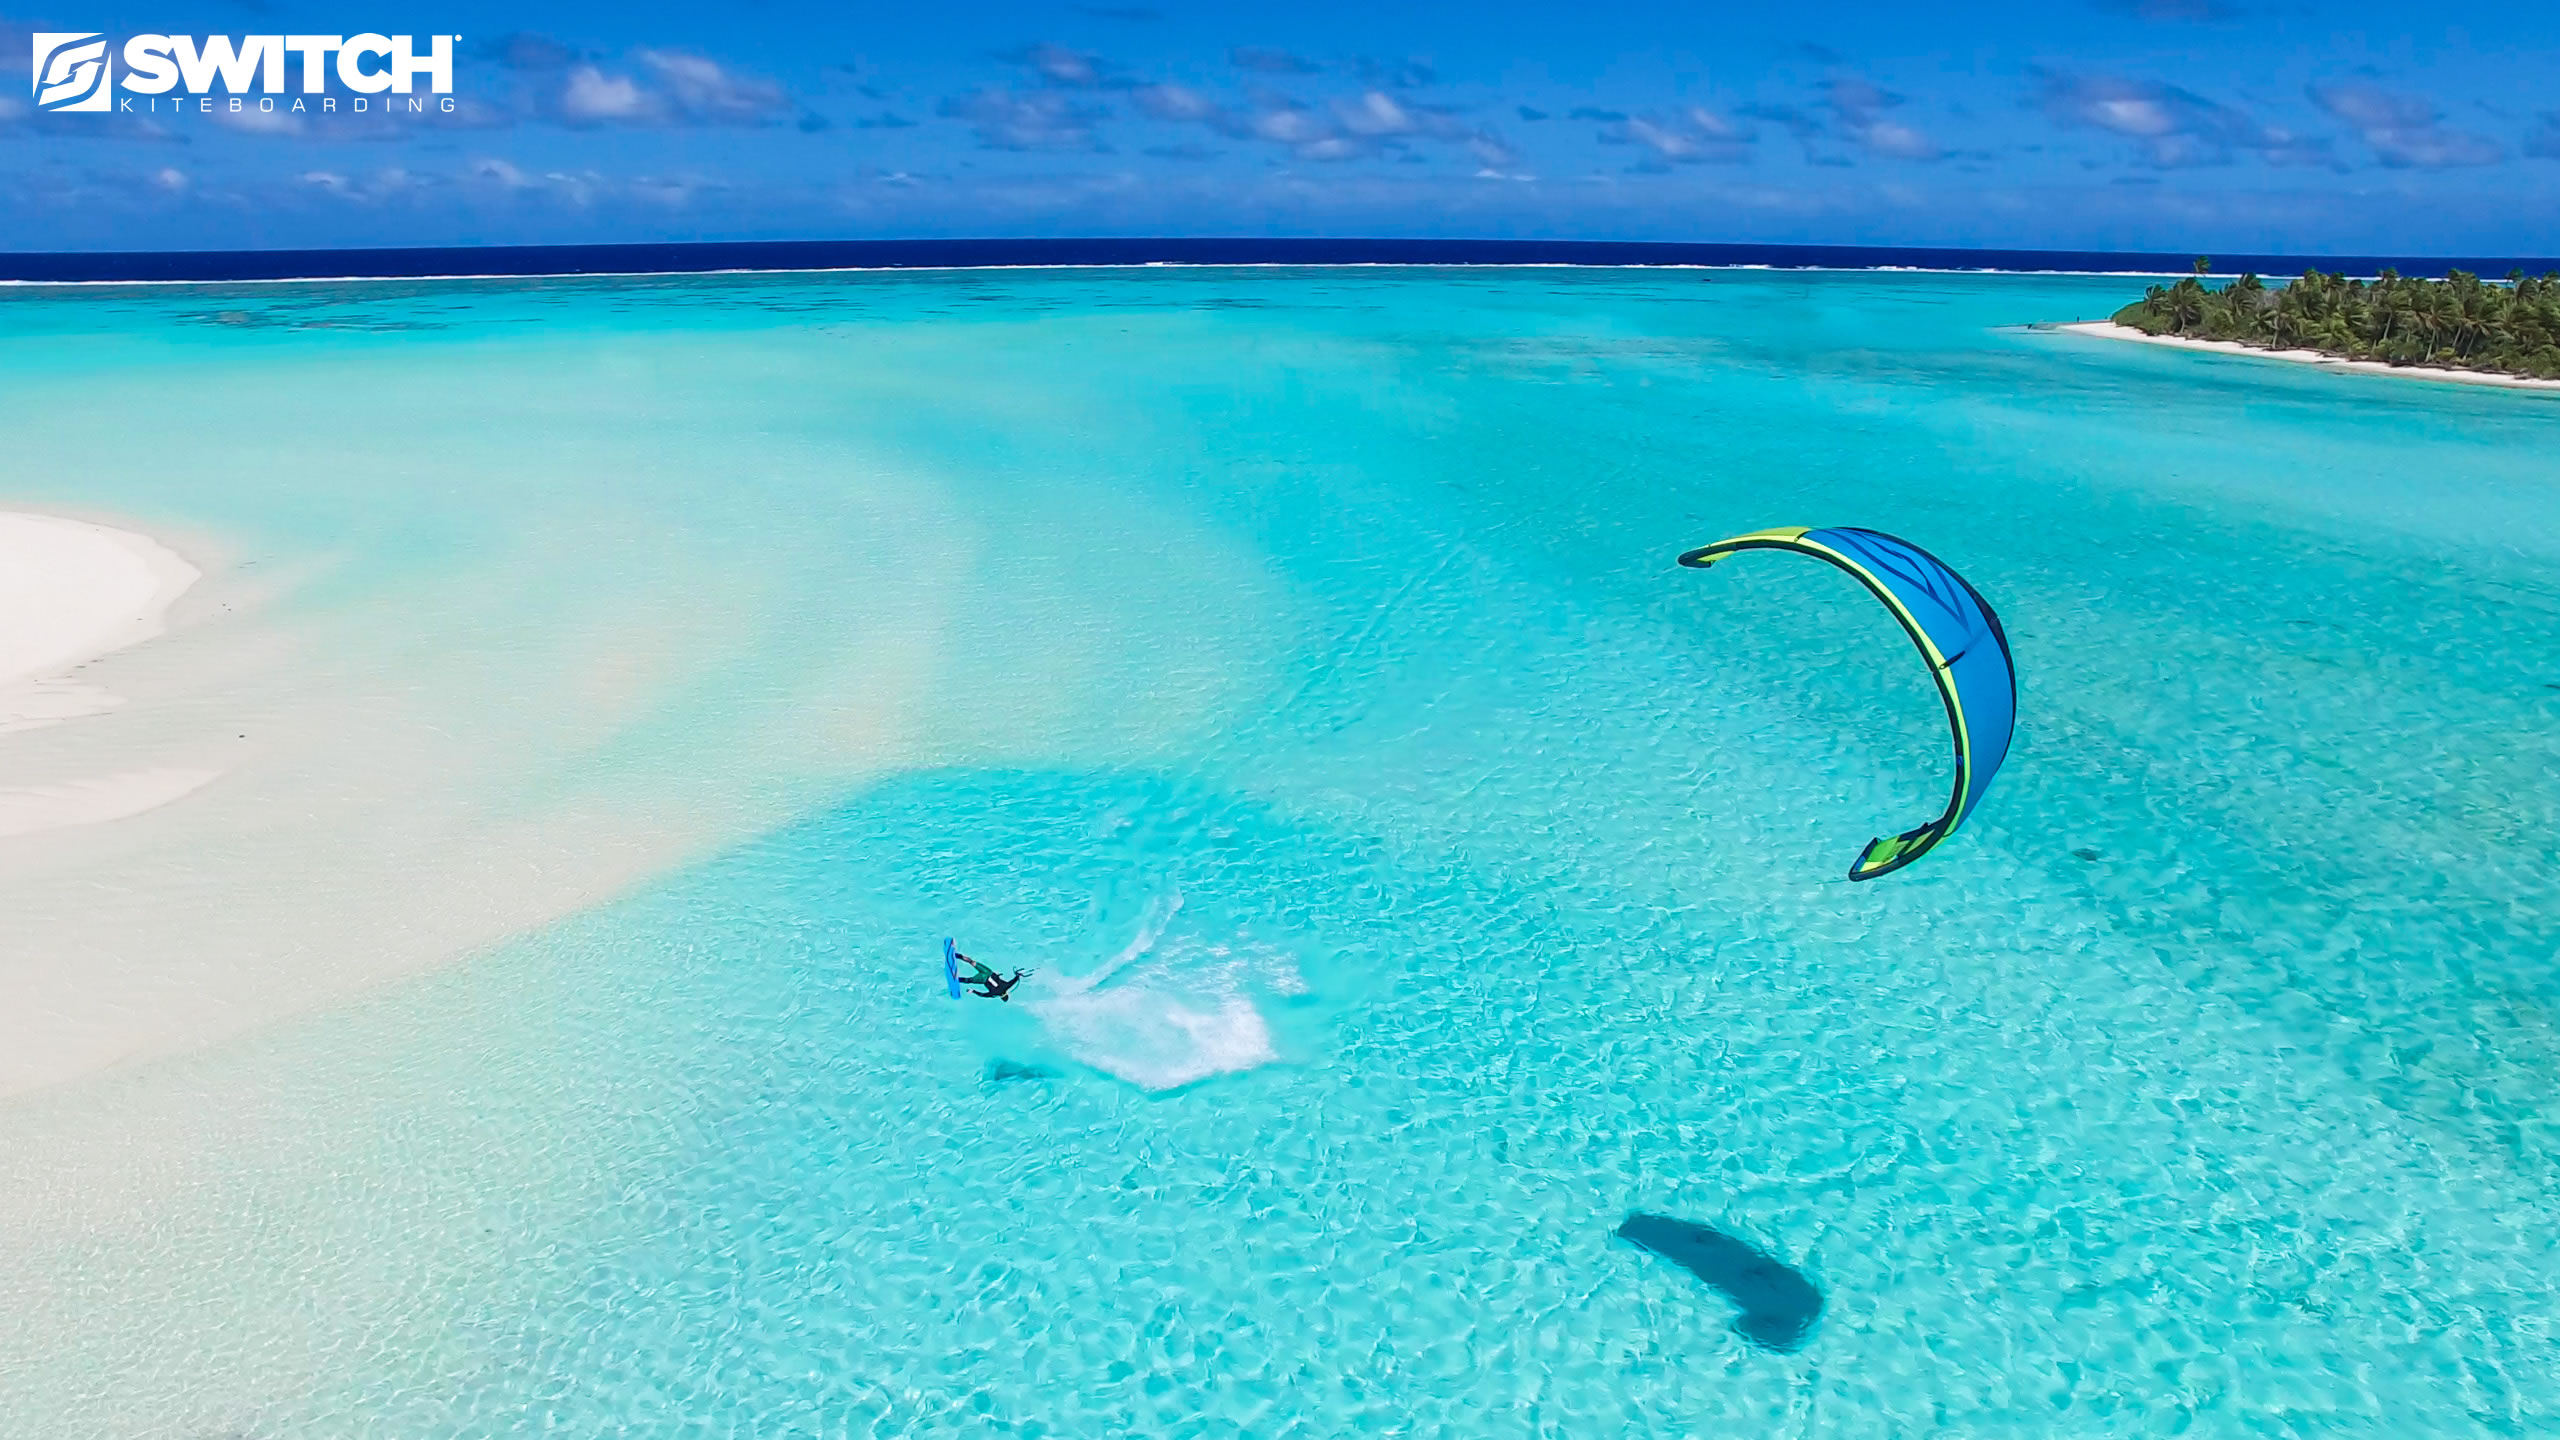 Kitesurfing Wallpapers and Background Images   stmednet 2560x1440